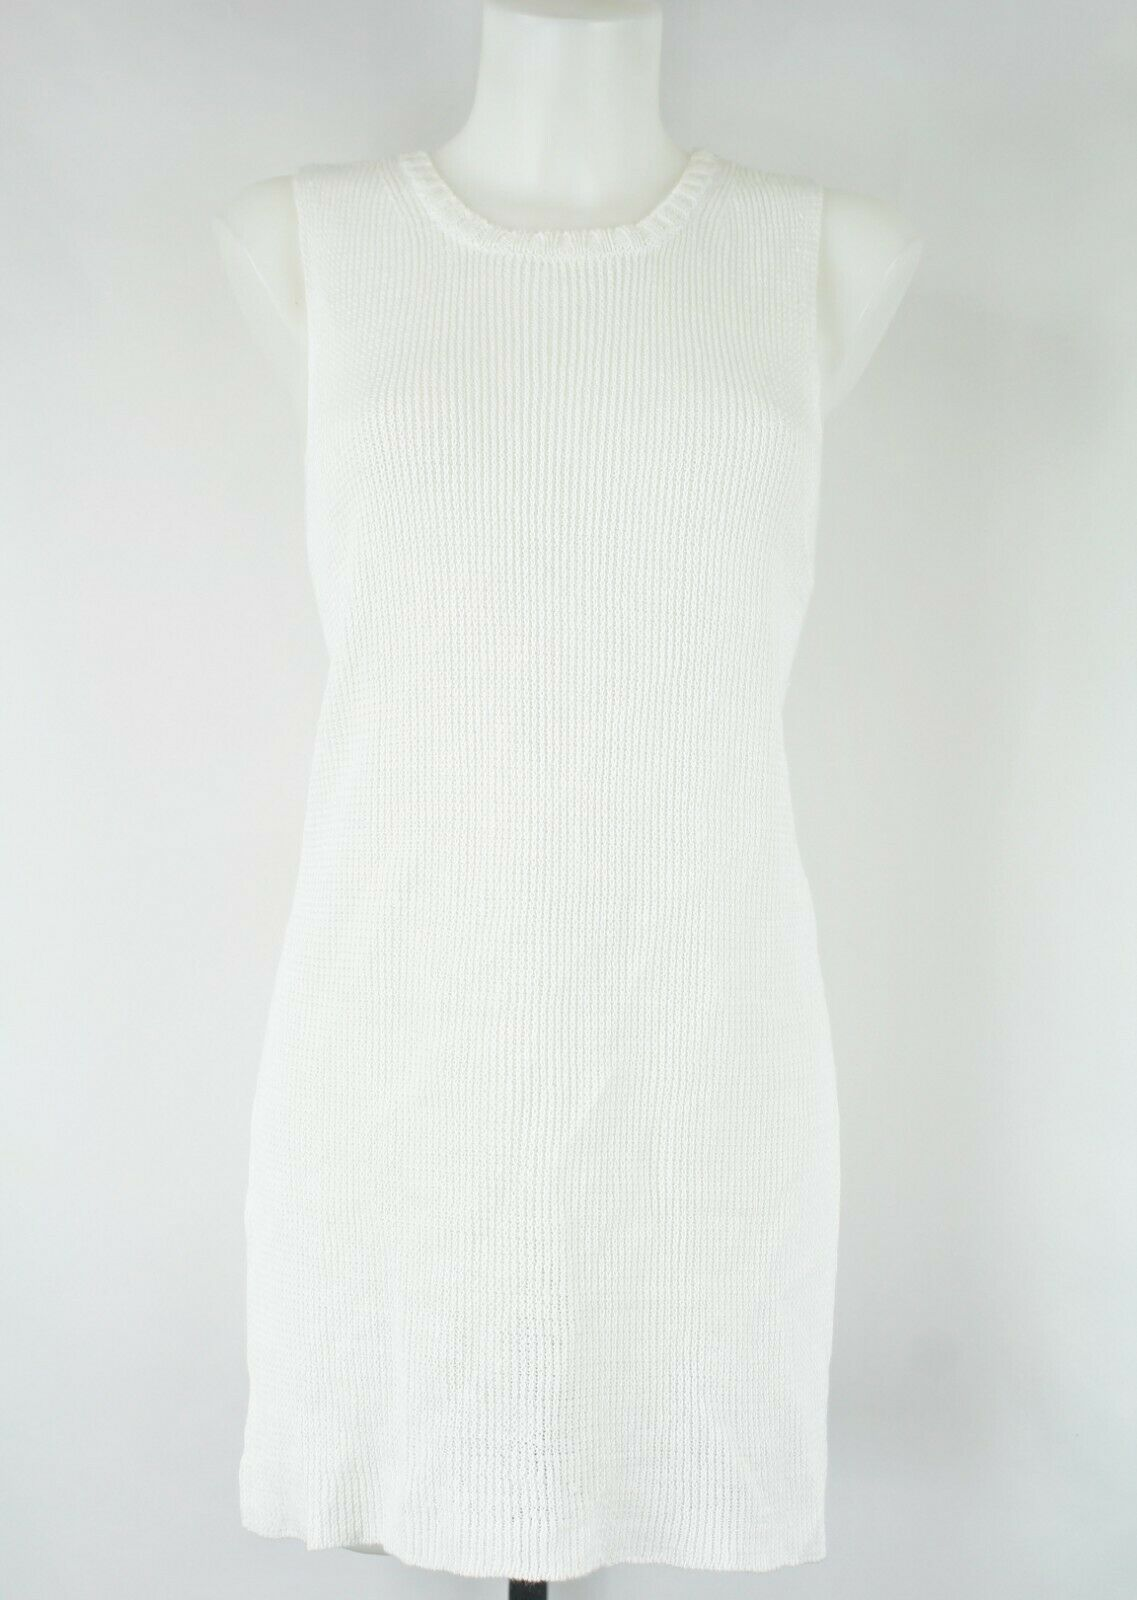 Margaret Oleary White Knit Tank Size Small